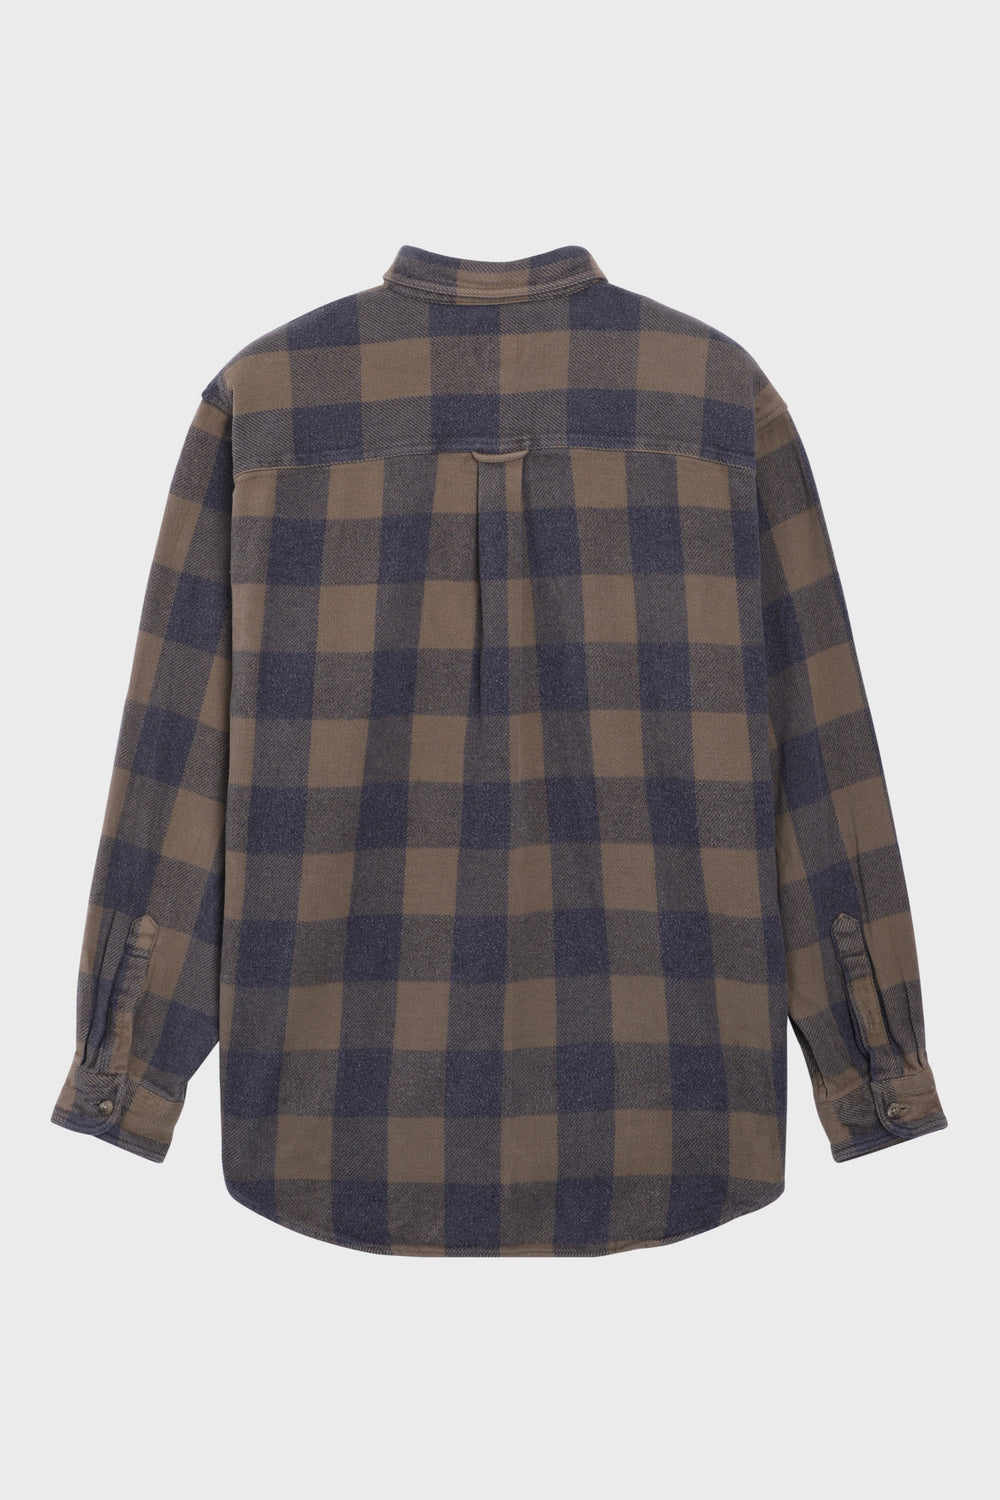 product-color-Brown Plaid Shirt